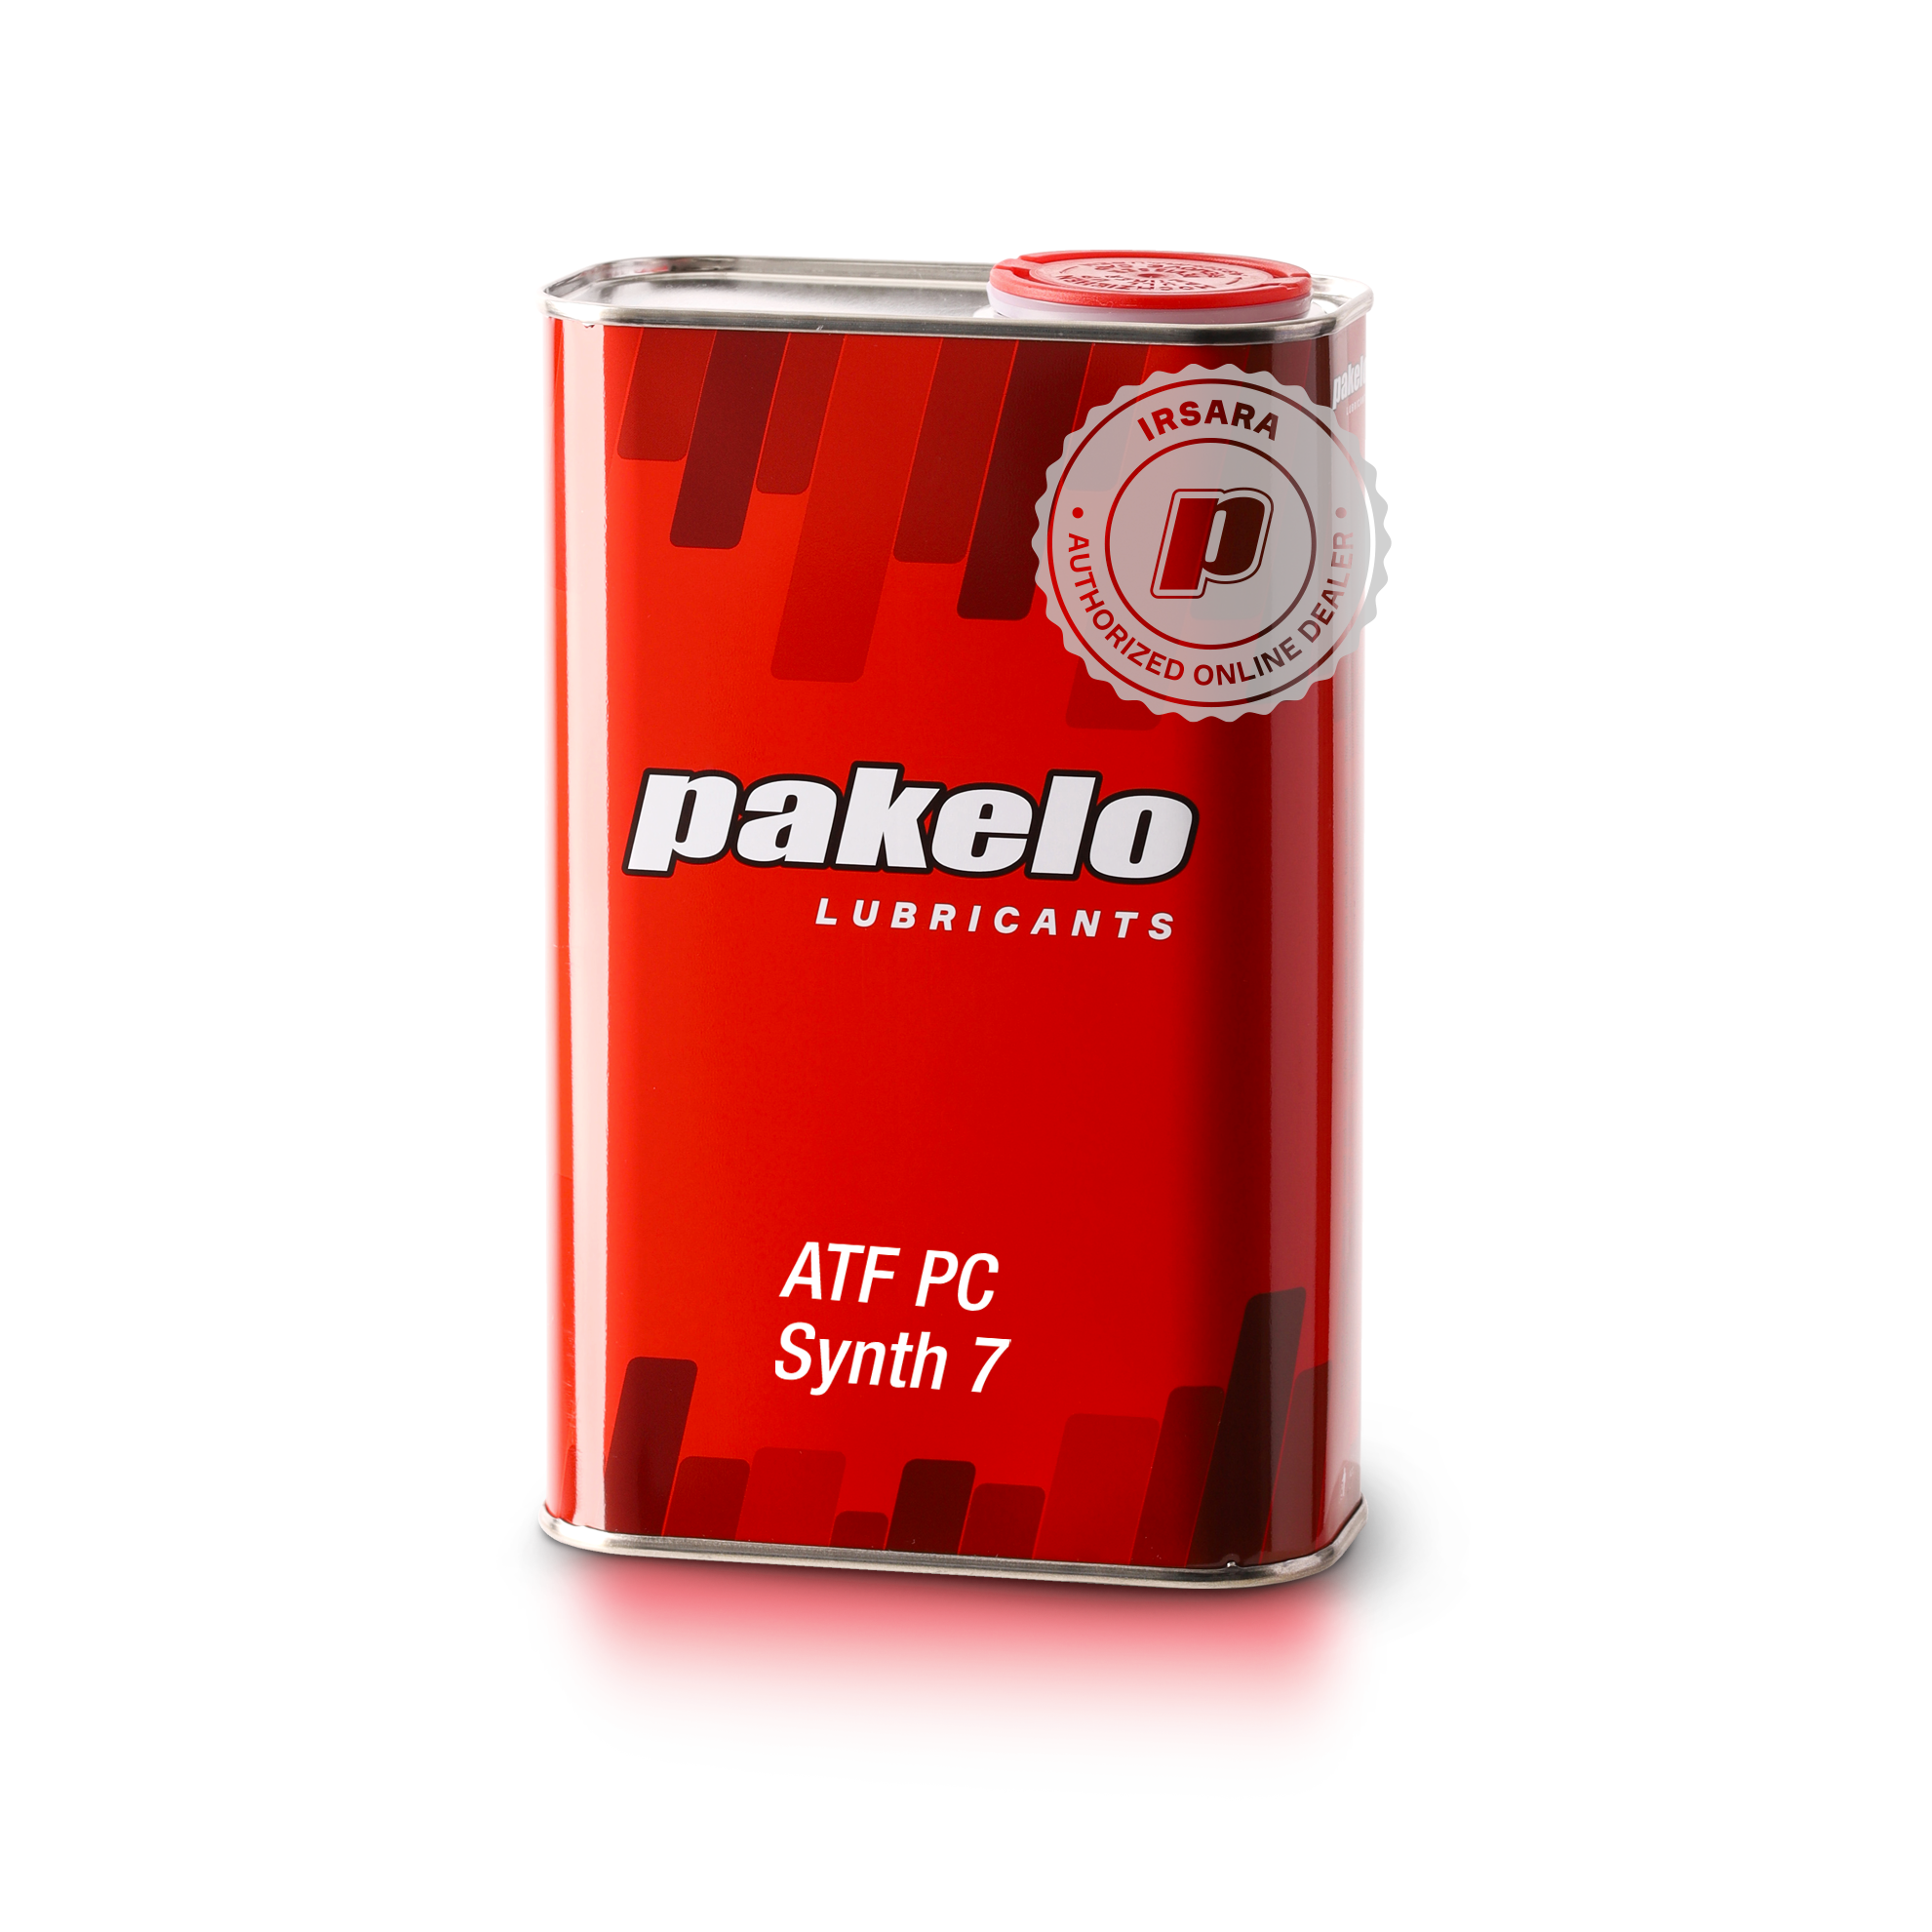 Pakelo Atf Pc Synth 7 (1 Lt)